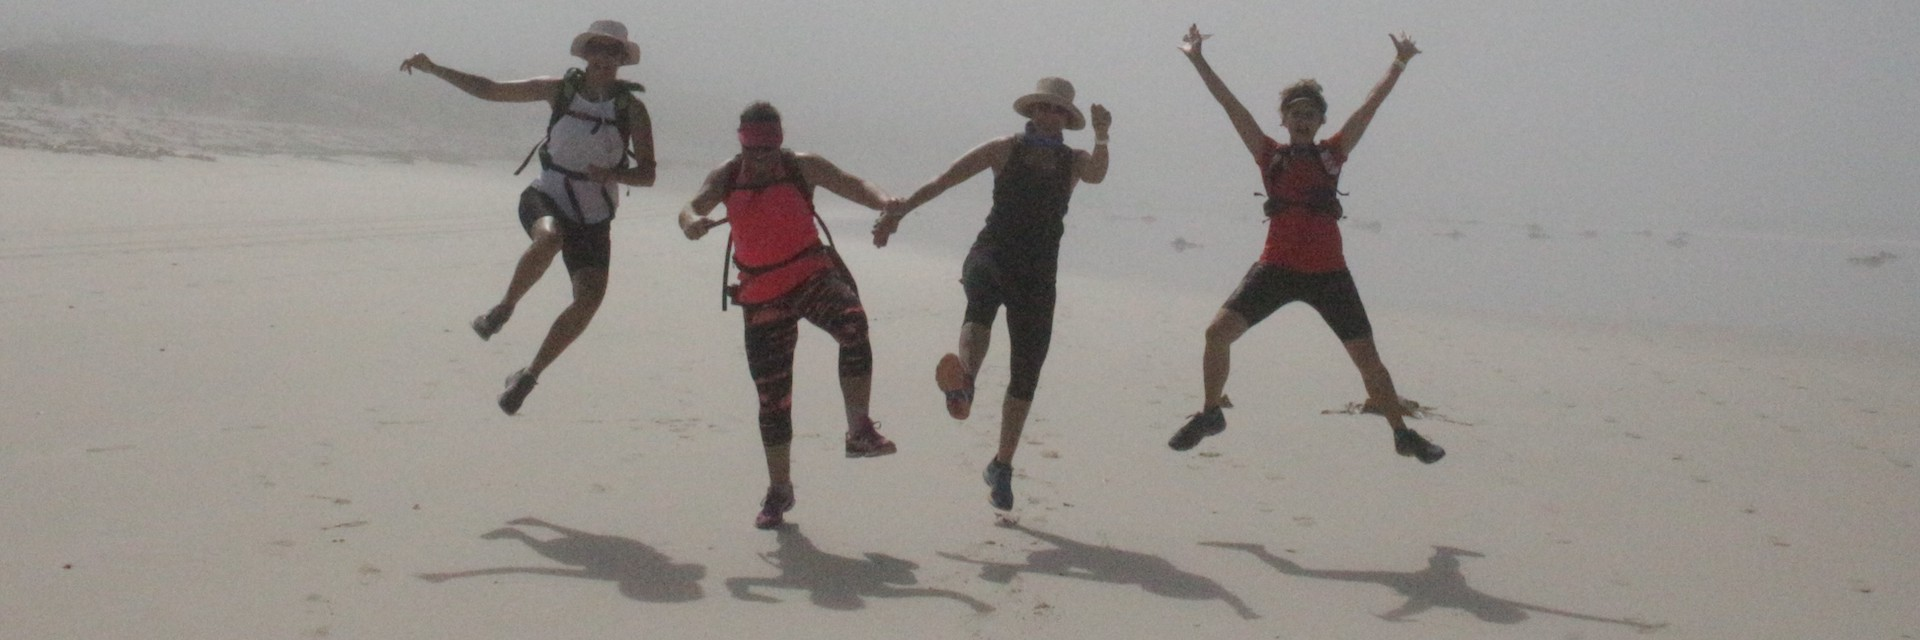 Perlemoen Trail hikers jumping for joy on the beach